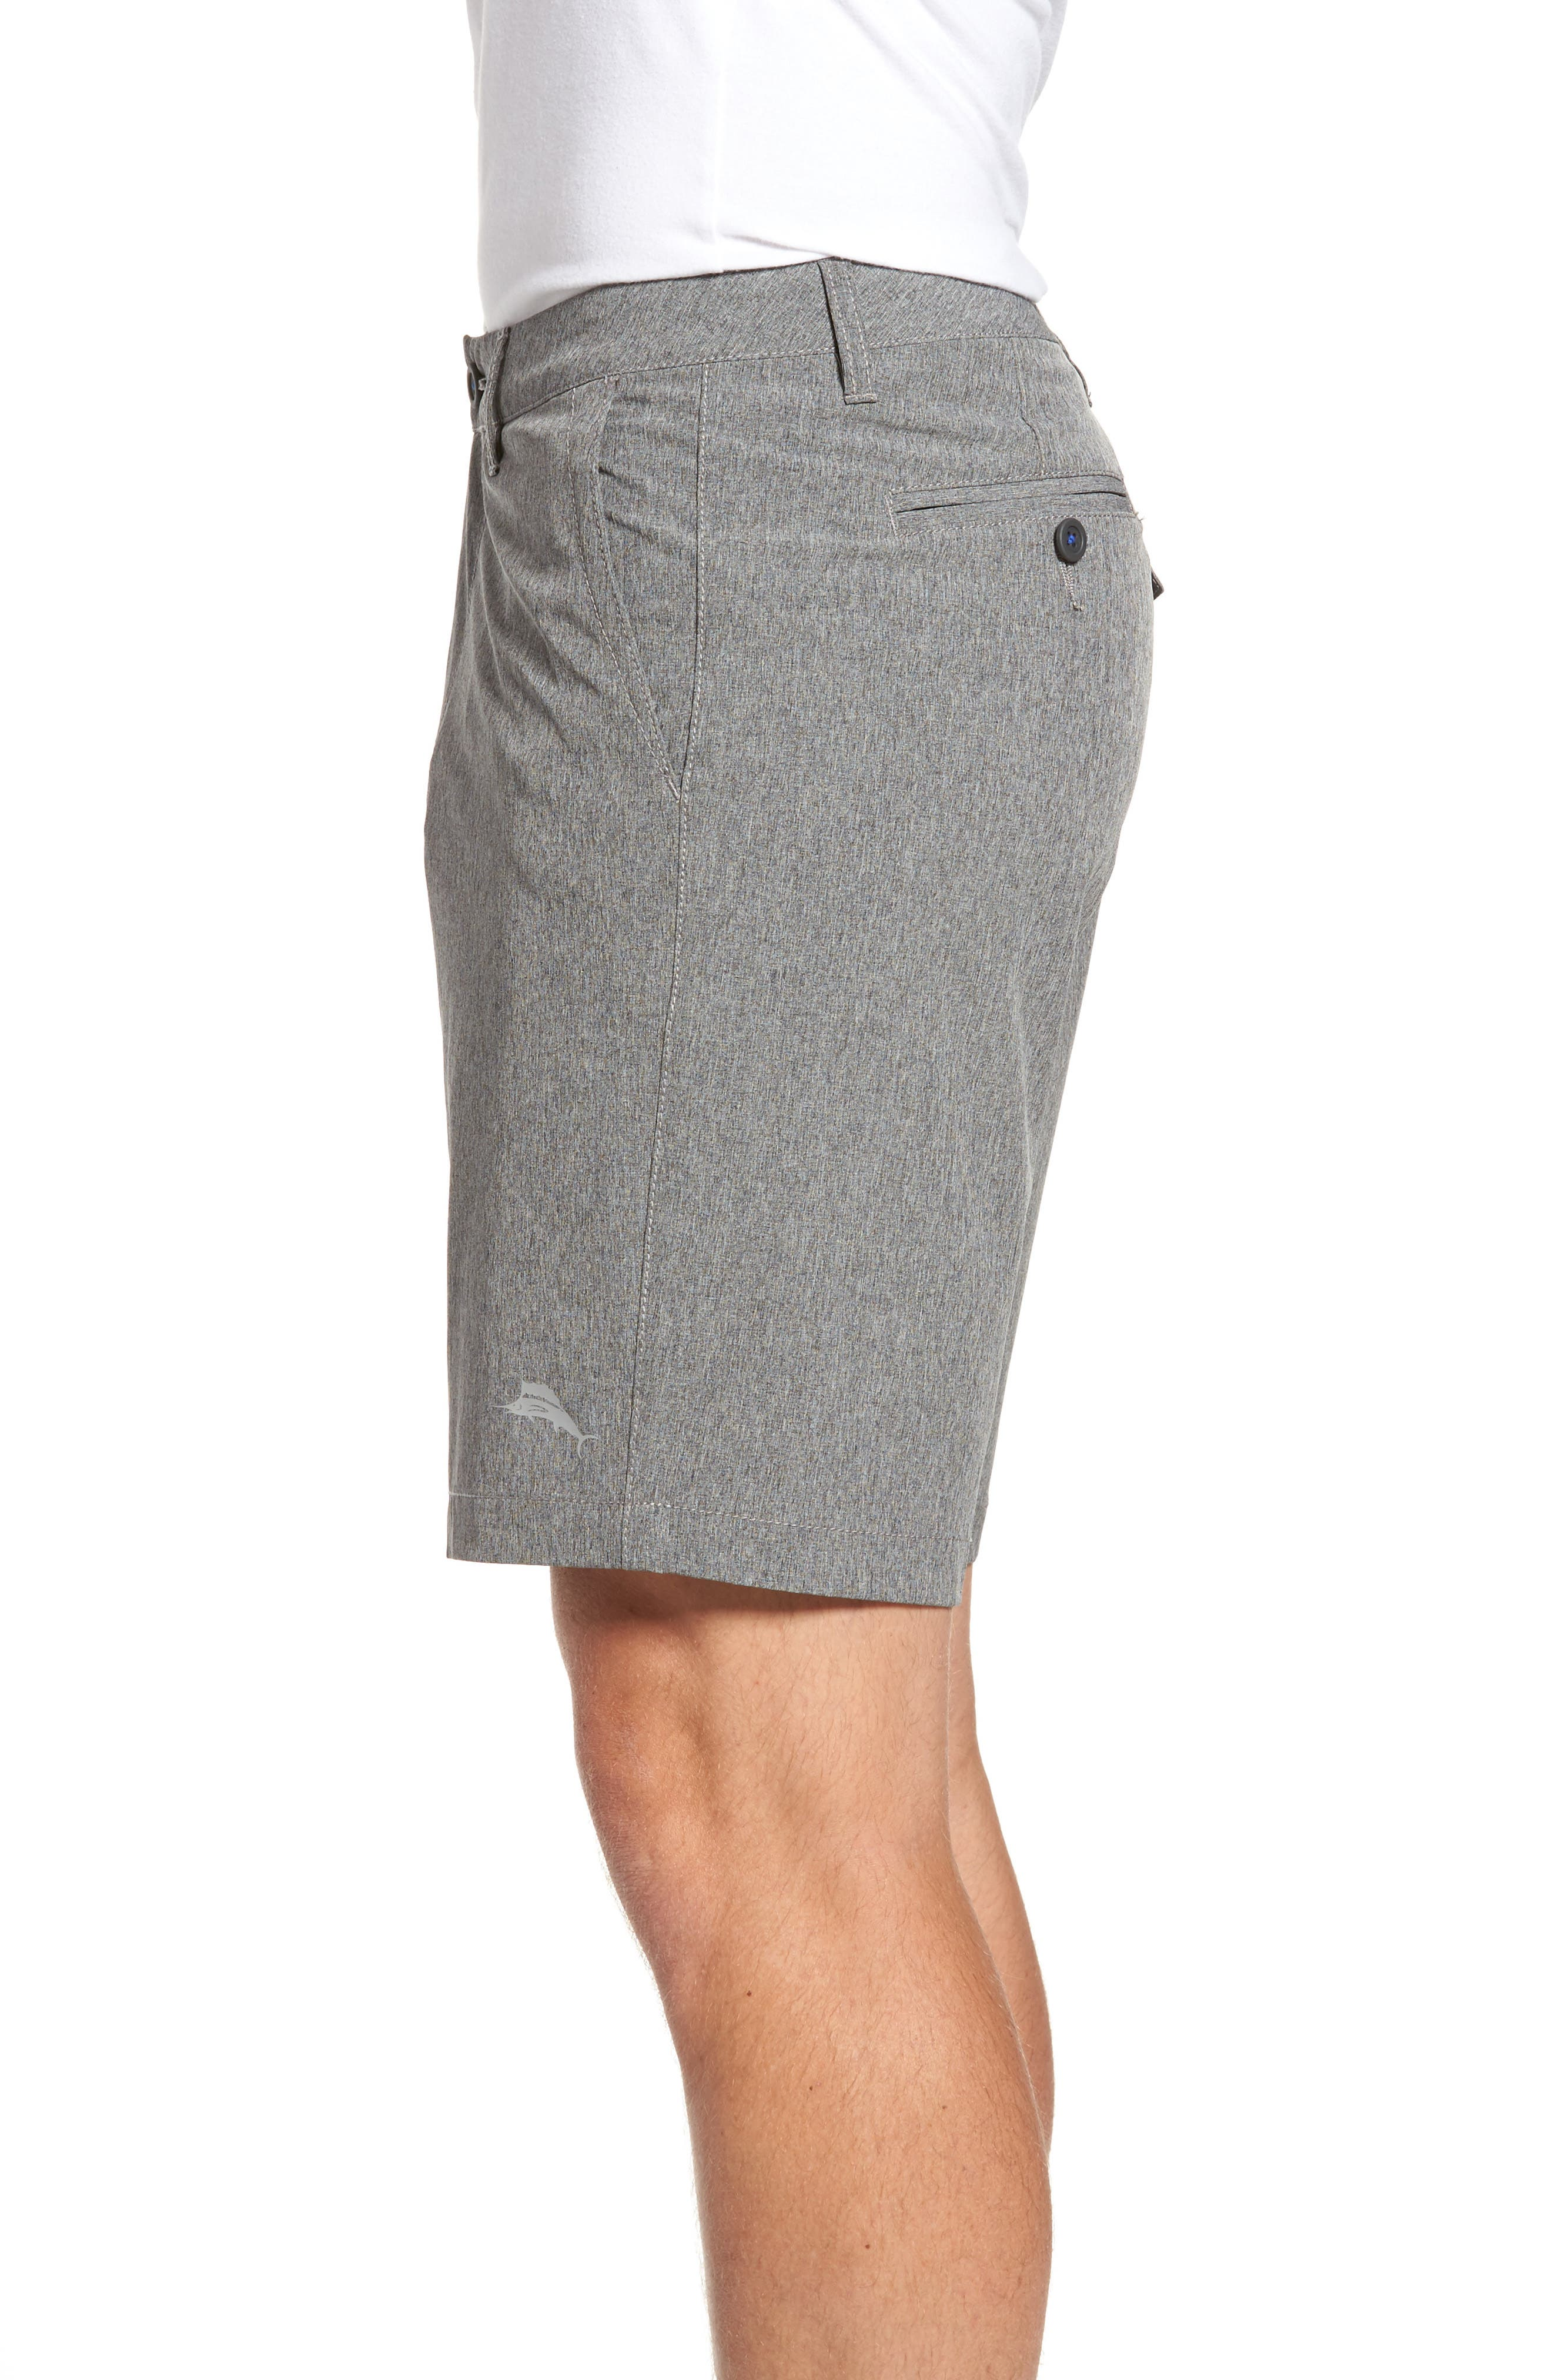 Cayman Isles Hybrid Swim Shorts,                             Alternate thumbnail 3, color,                             001